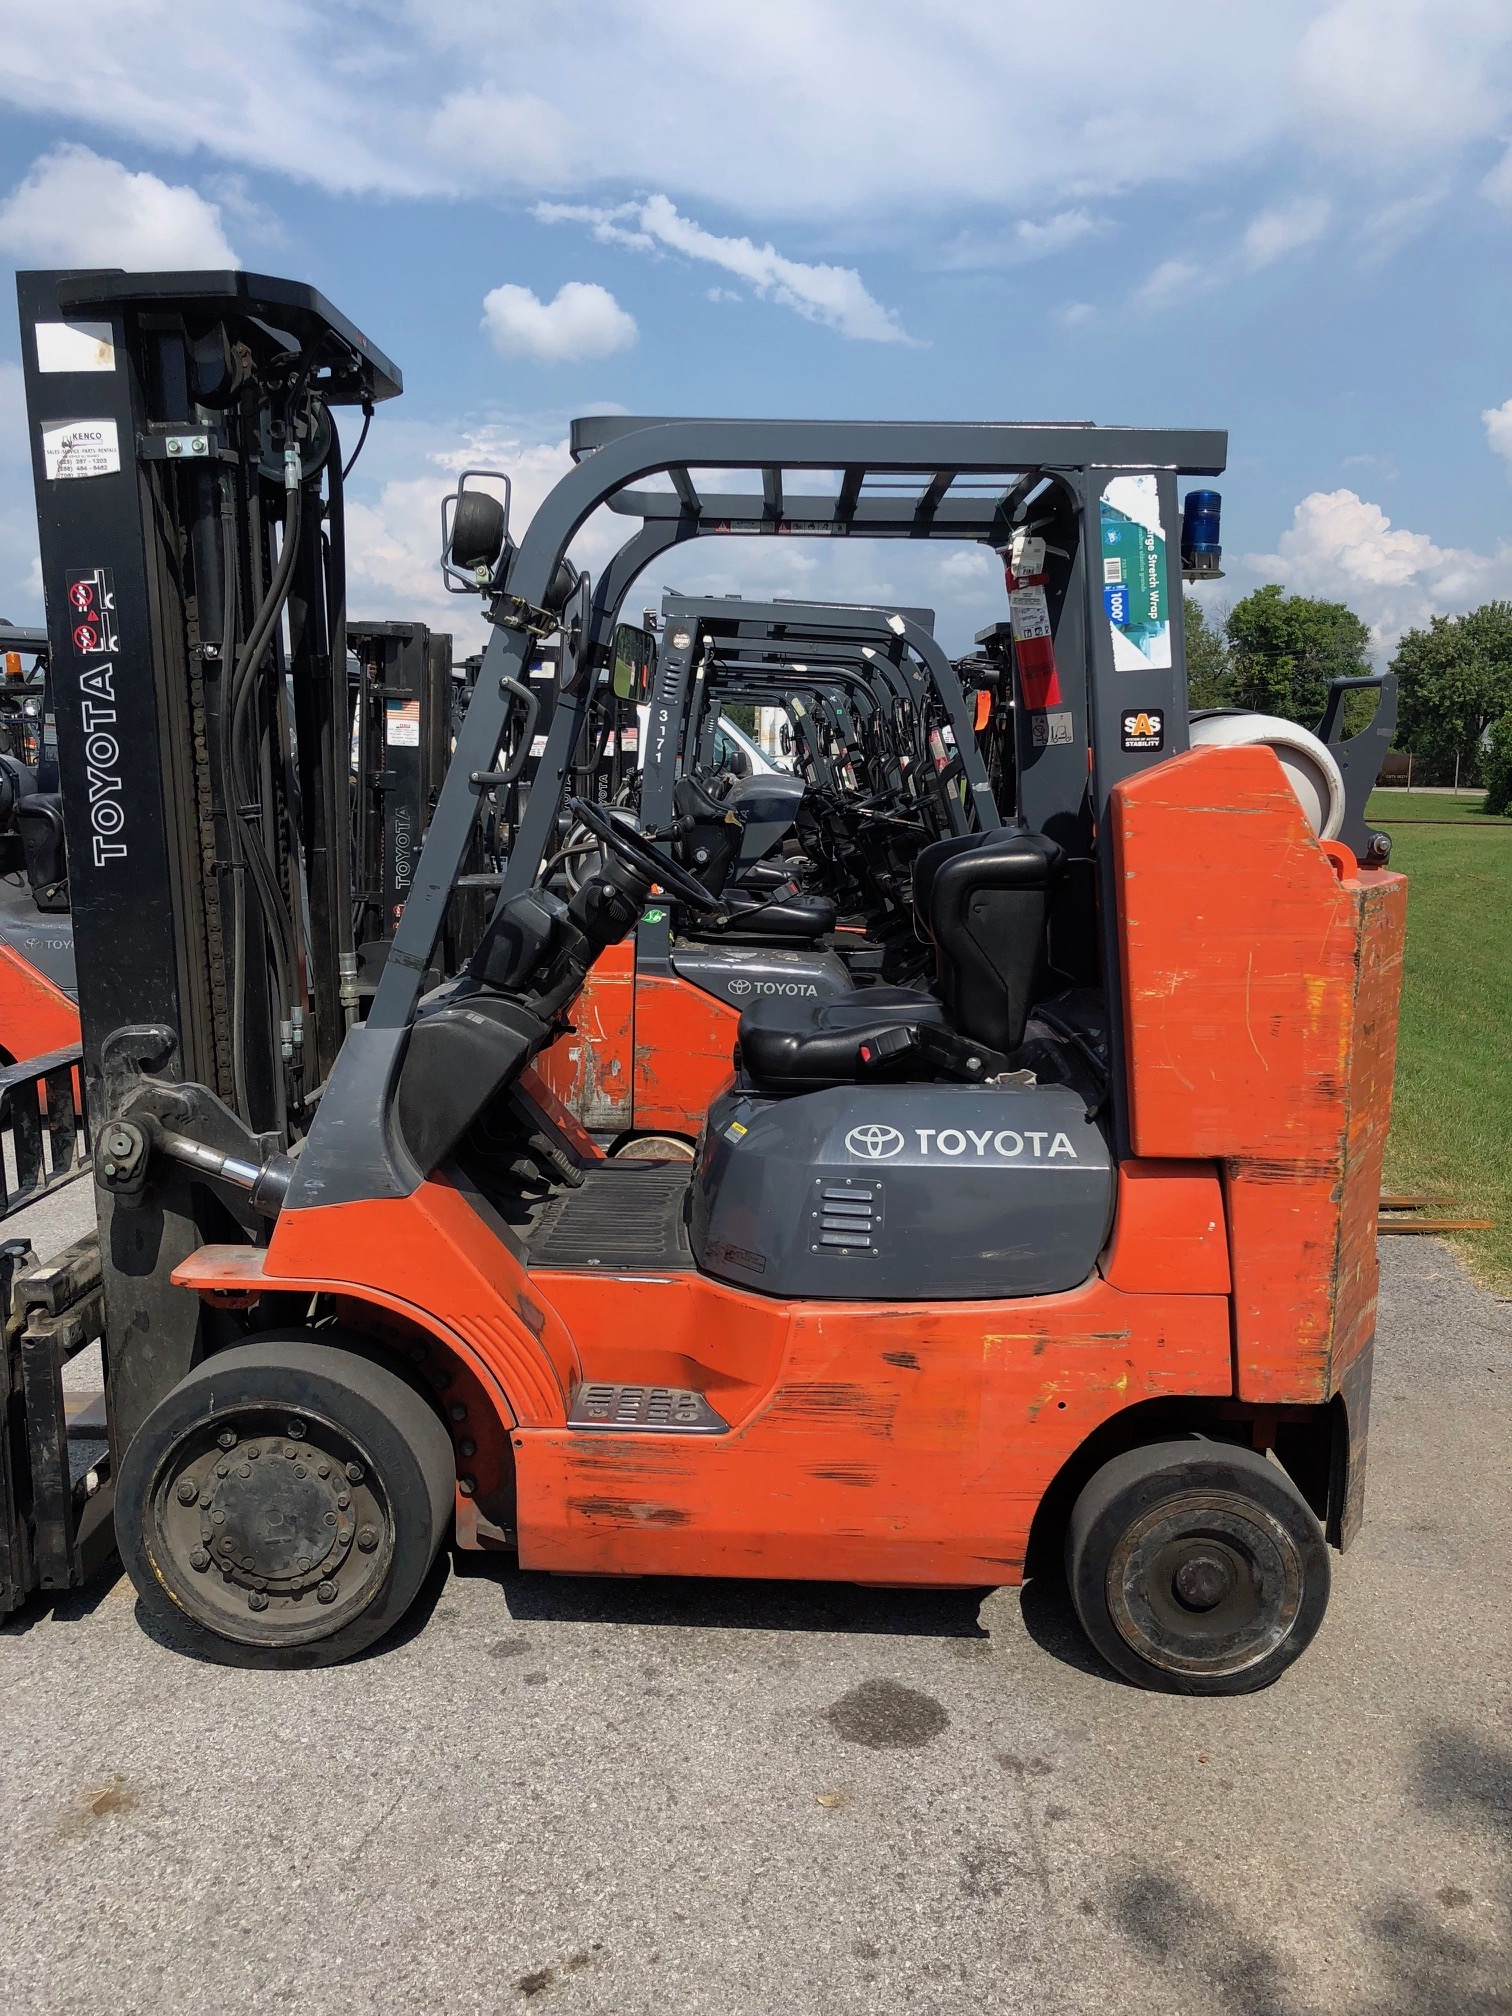 Used Forklifts in Chattanooga and Huntsville | Kenco Toyota-Lift